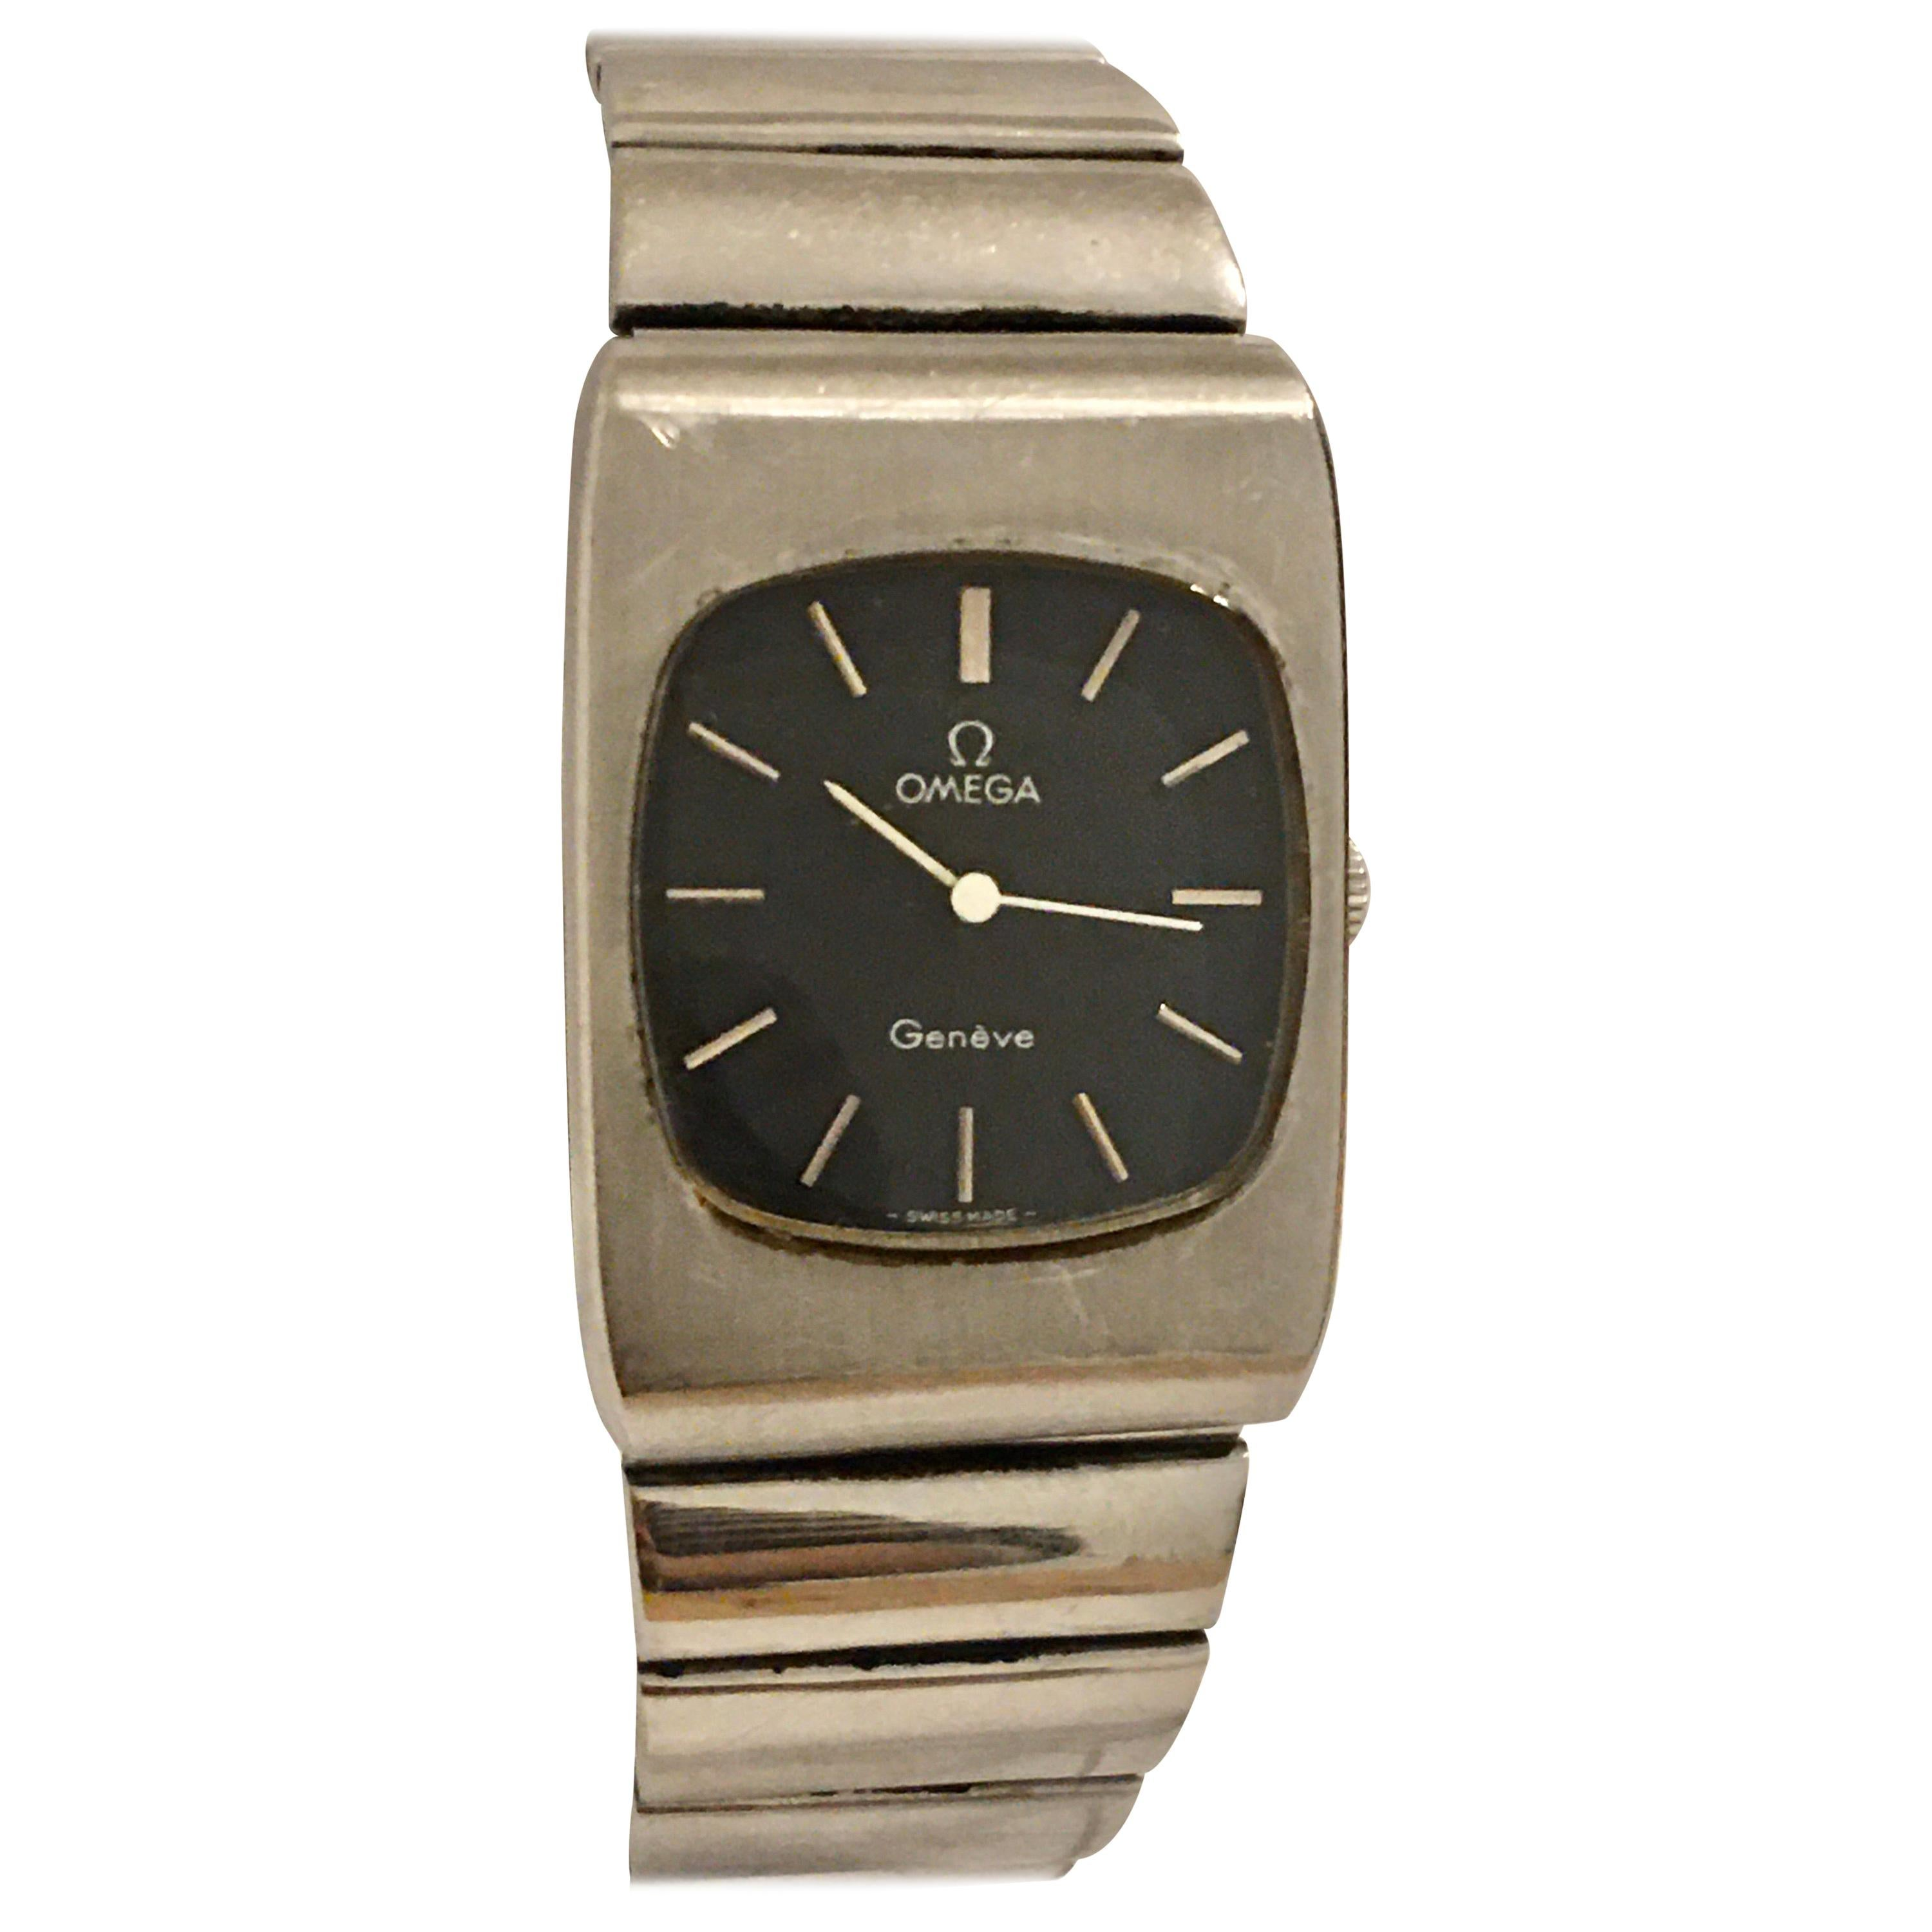 1970s Stainless Steel Omega Geneve Mechanical Watch